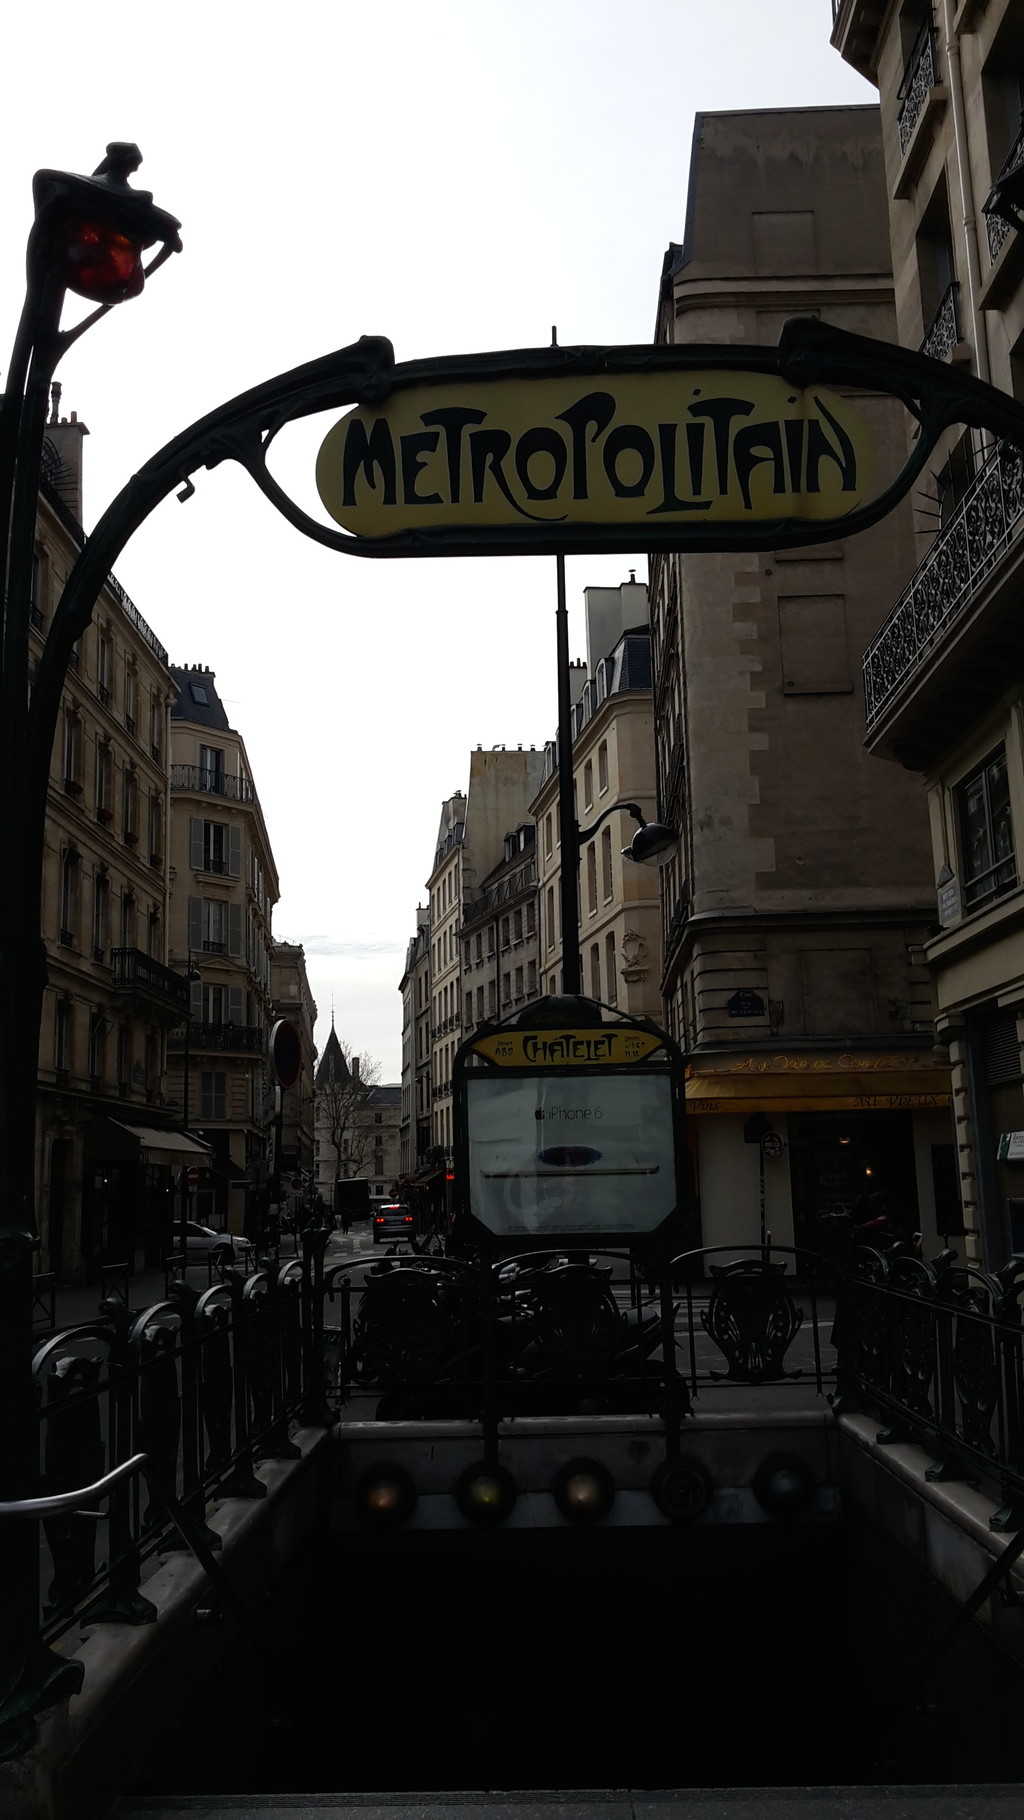 Chatelet, Les Halles, More Paris